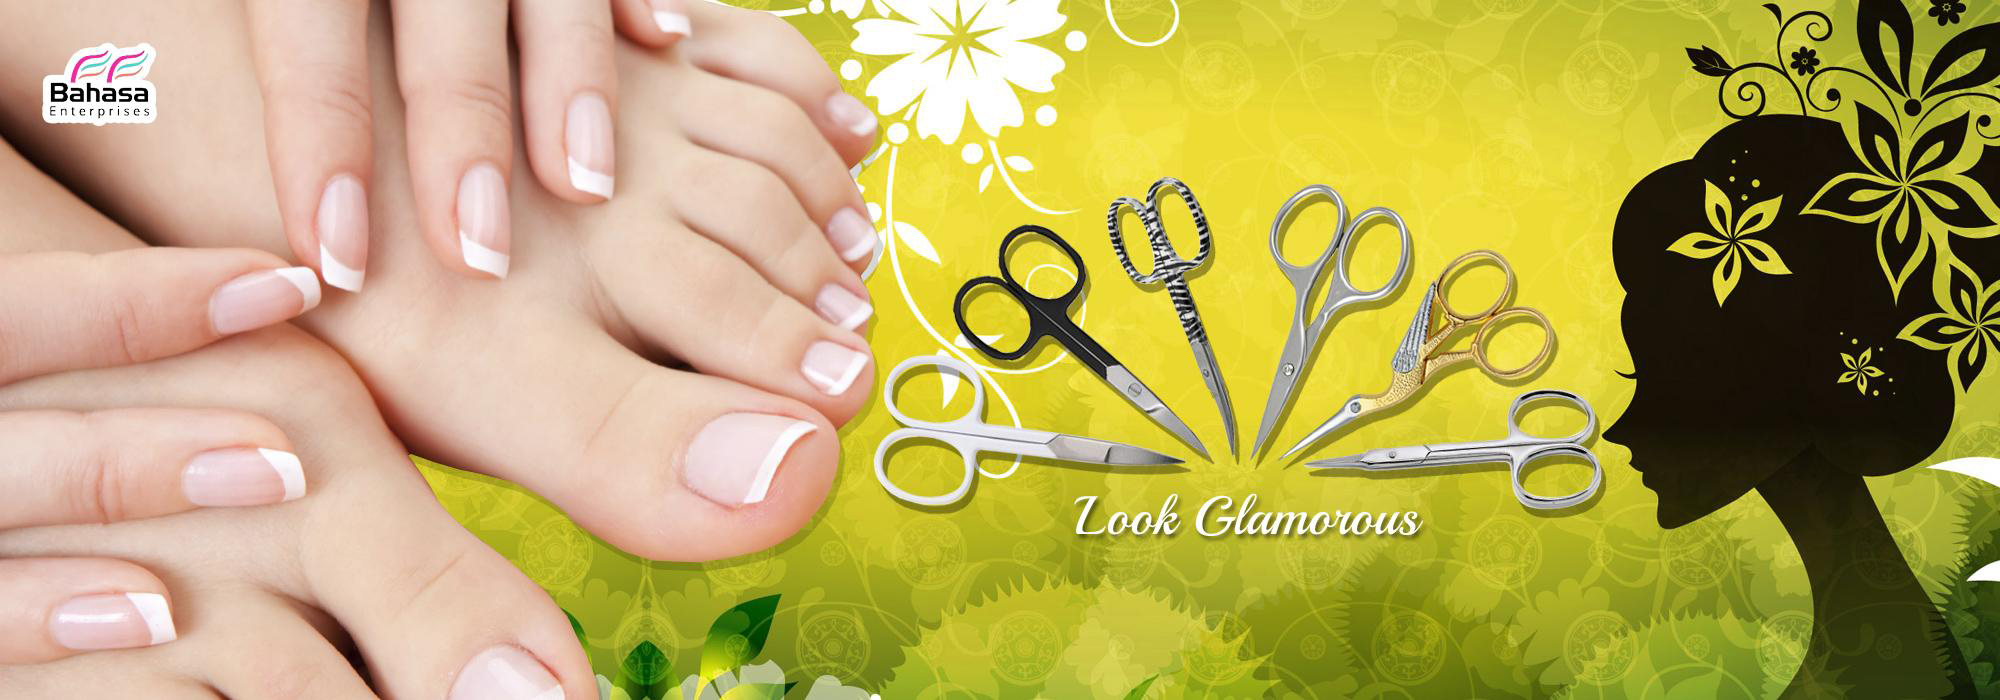 Stainless steel cuticle scissors